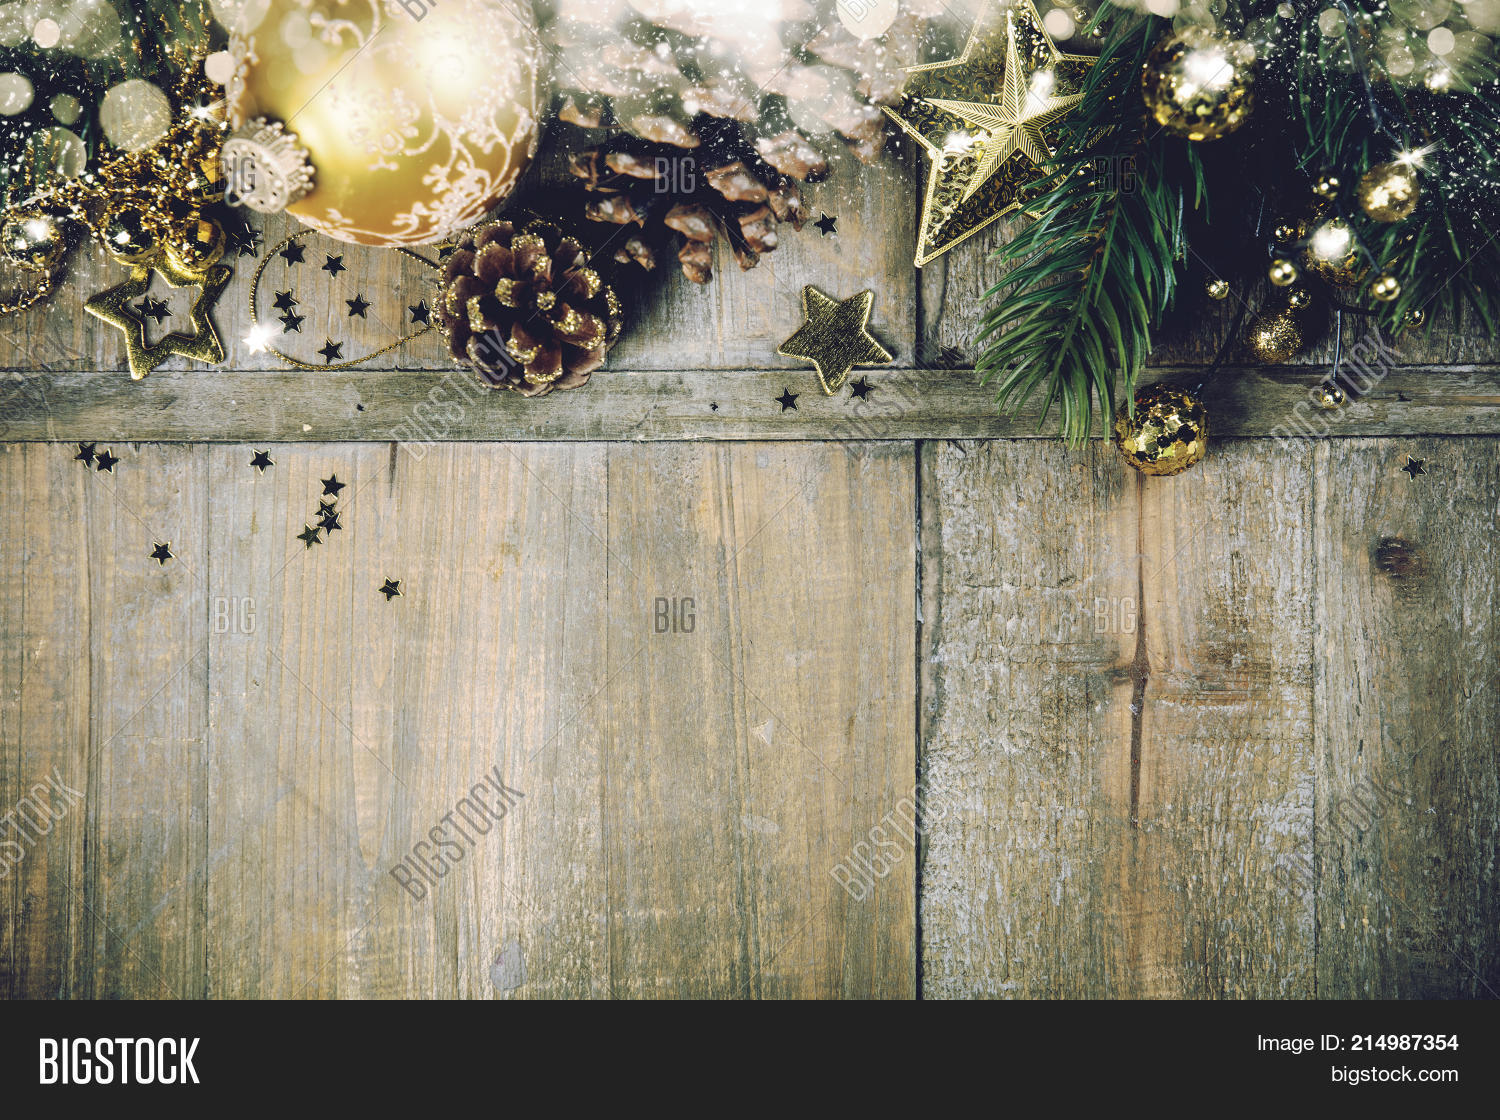 Rustic Wood Background Image Photo Free Trial Bigstock